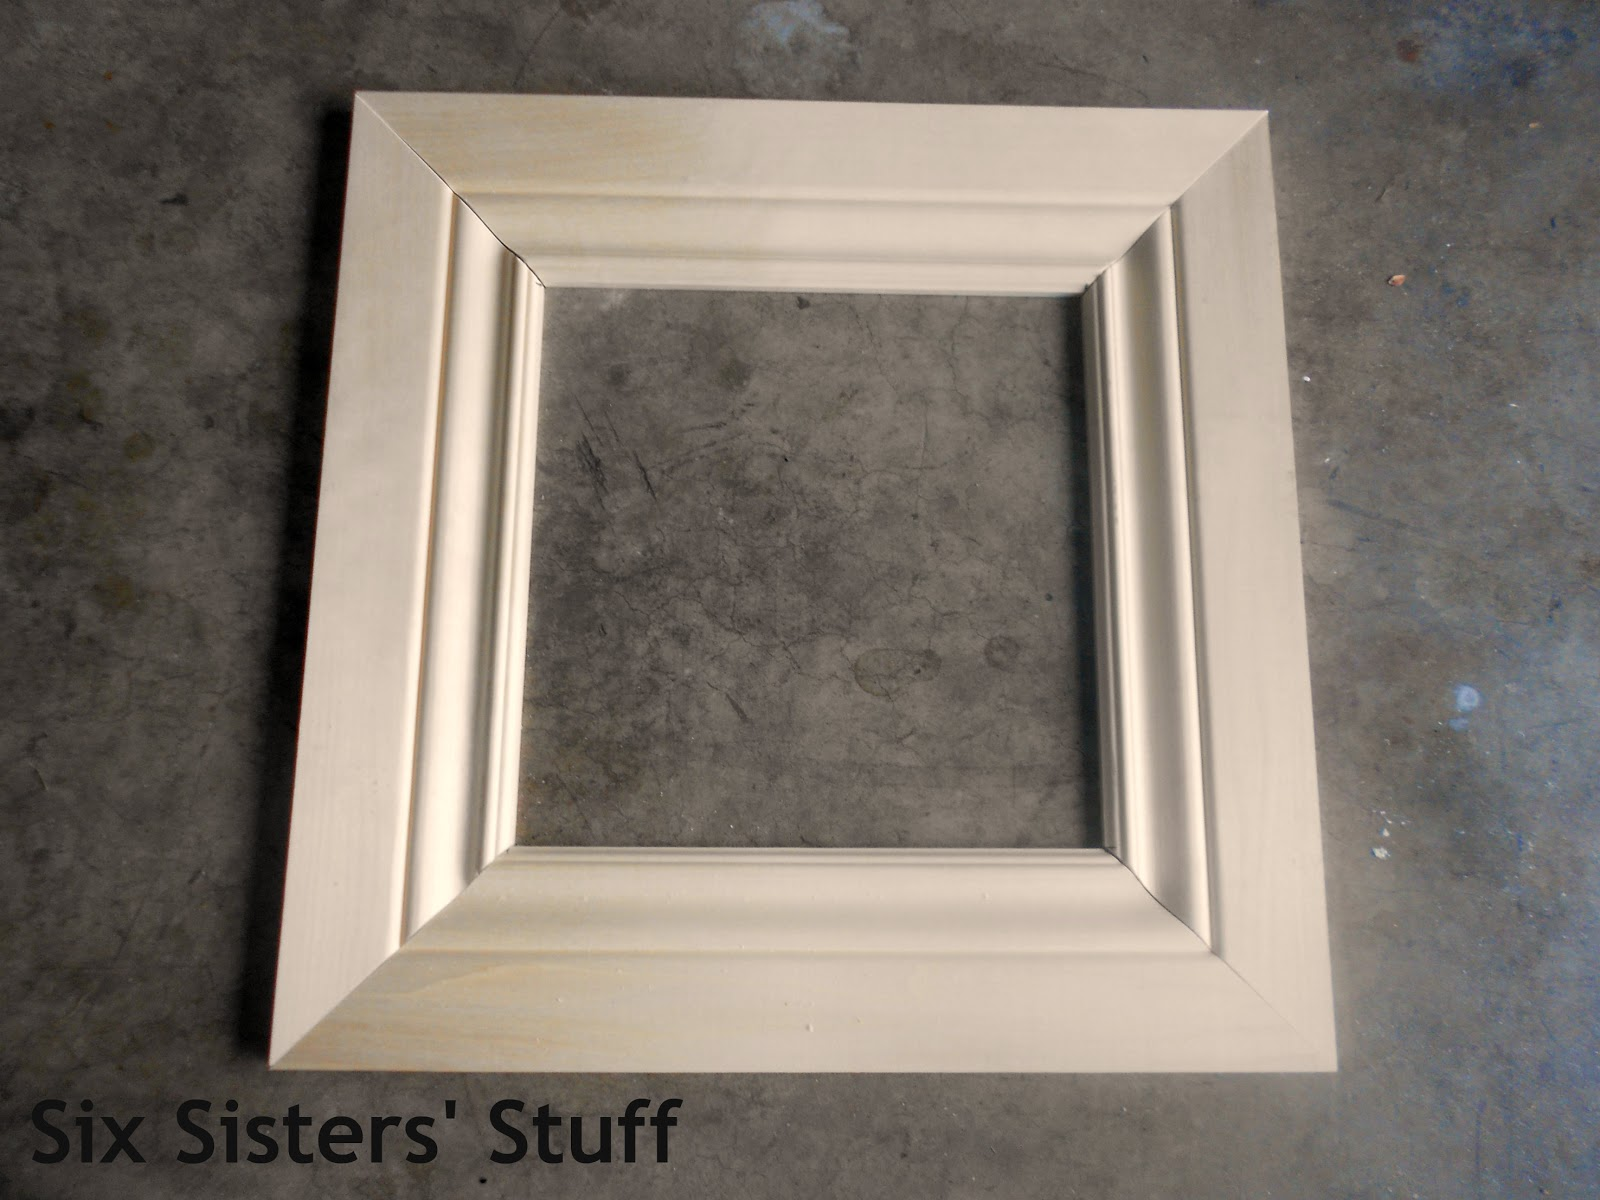 Diy crown moulding picture frames lowes 50 and change project diy crown moulding picture frames lowes 50 and change project six sisters stuff jeuxipadfo Choice Image